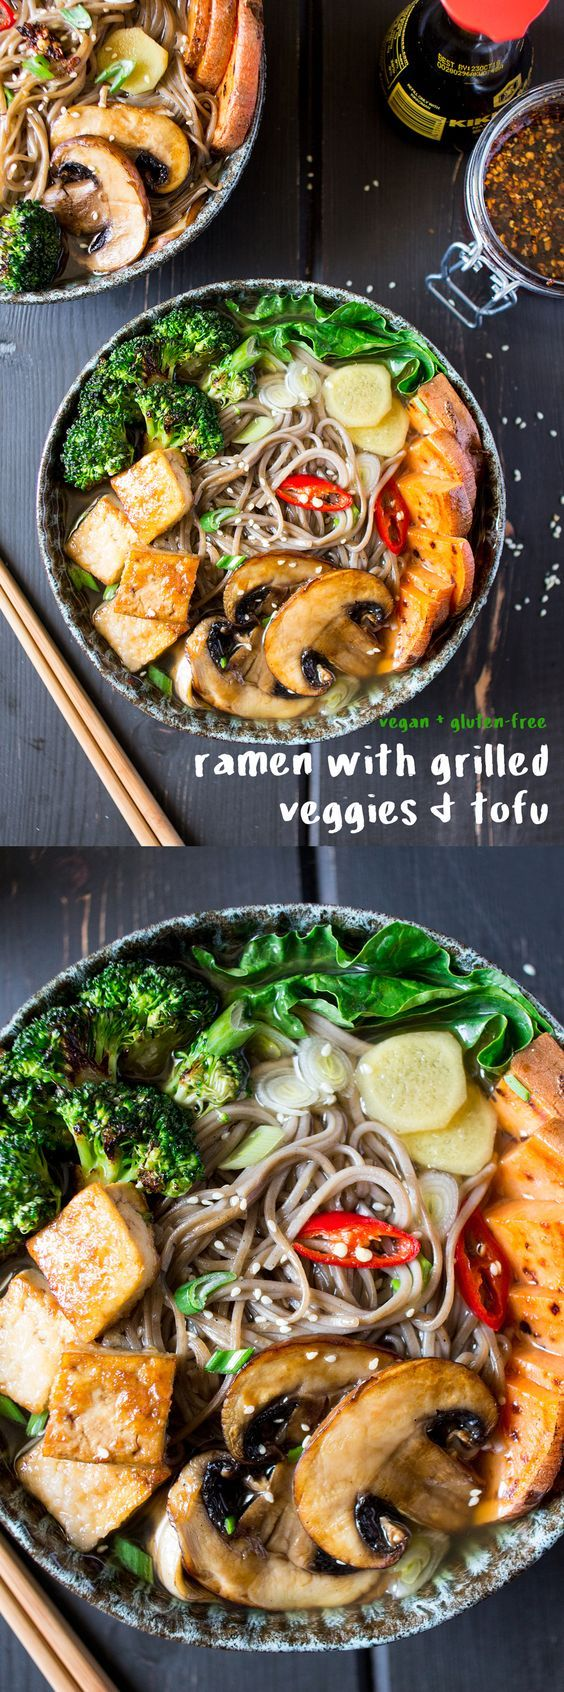 Vegan ramen with grilled vegetables and tofu Recipe